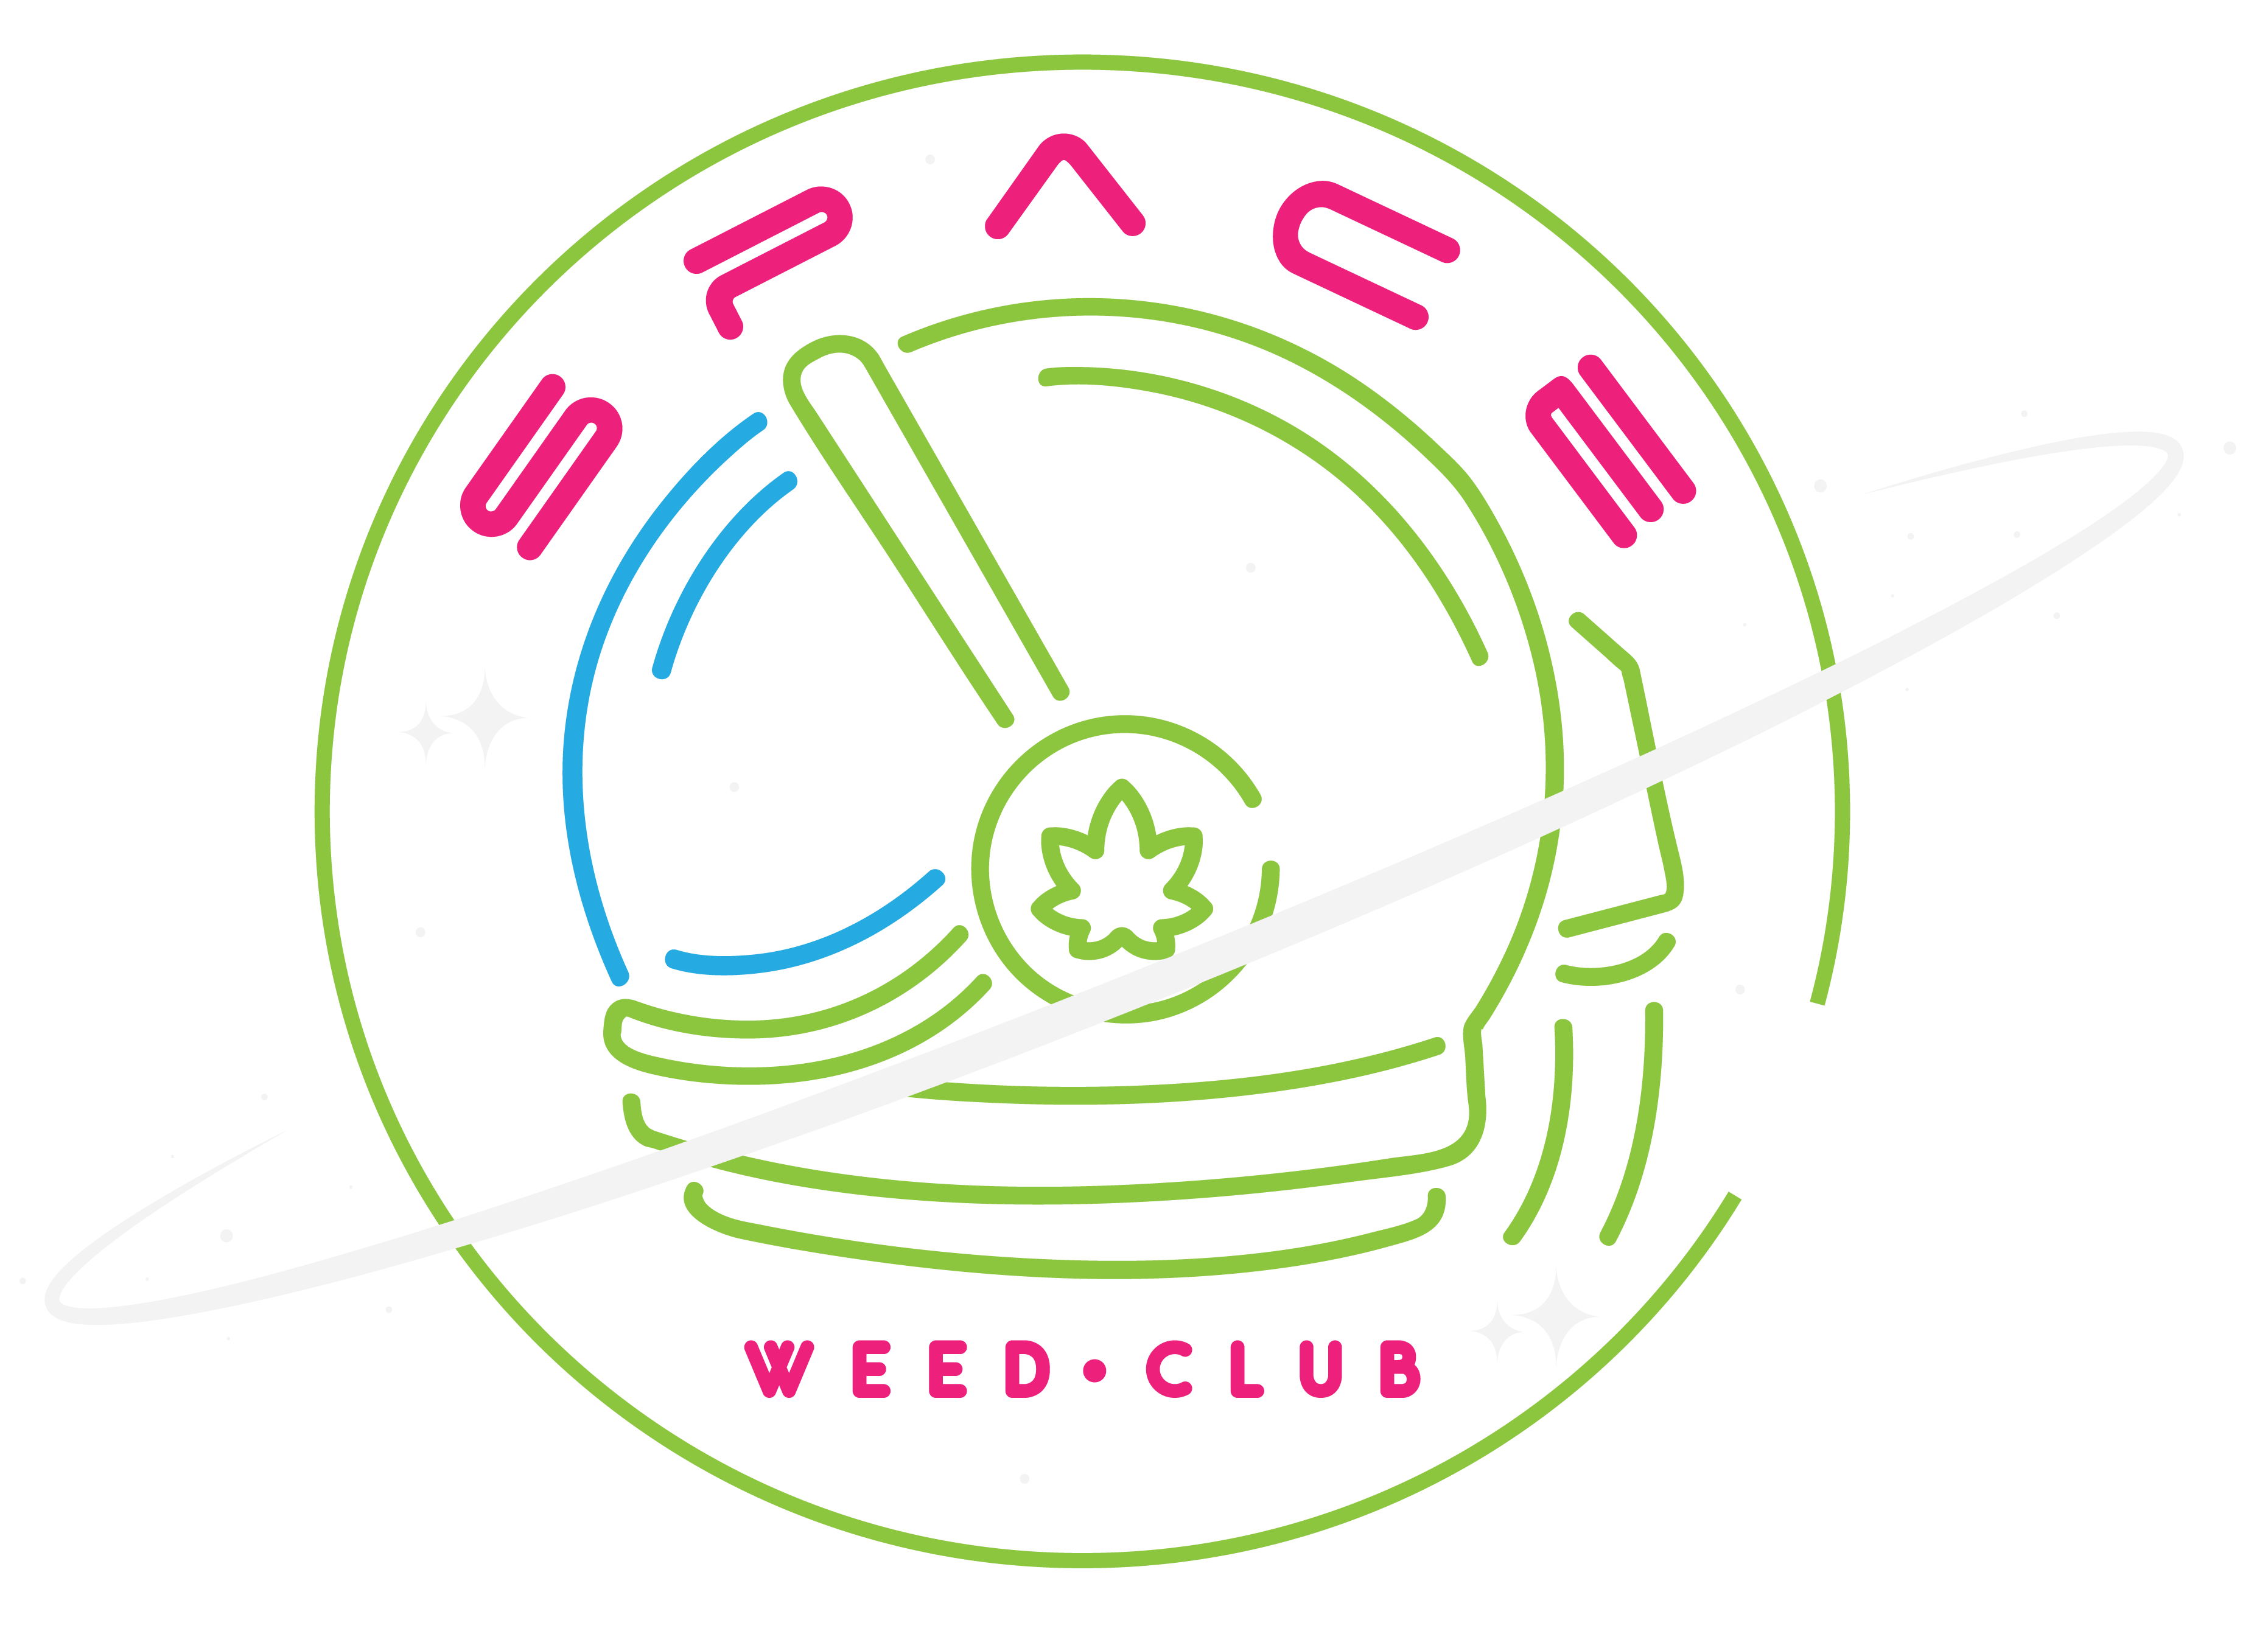 Space Weed Club Logo